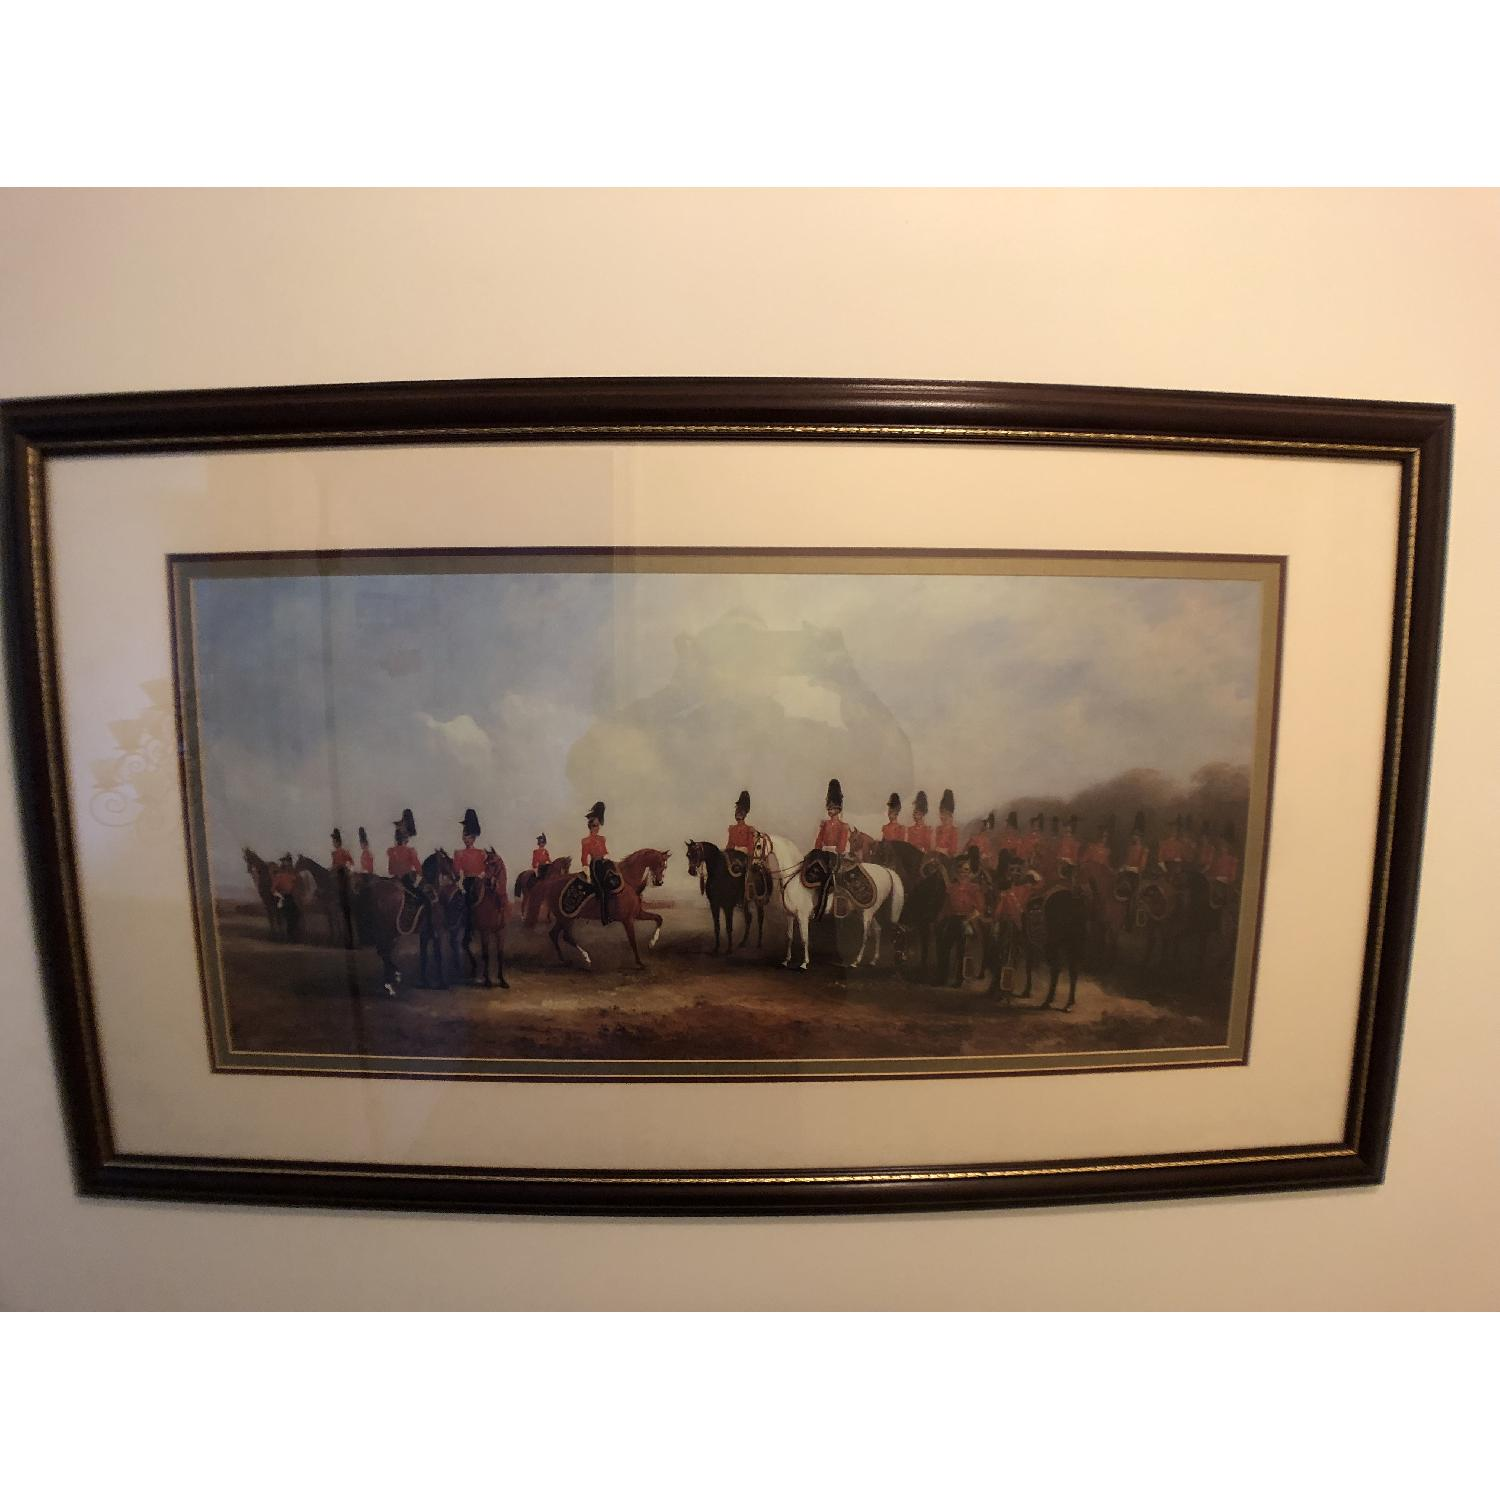 Bombay Co. Framed Print of Cavalry-0